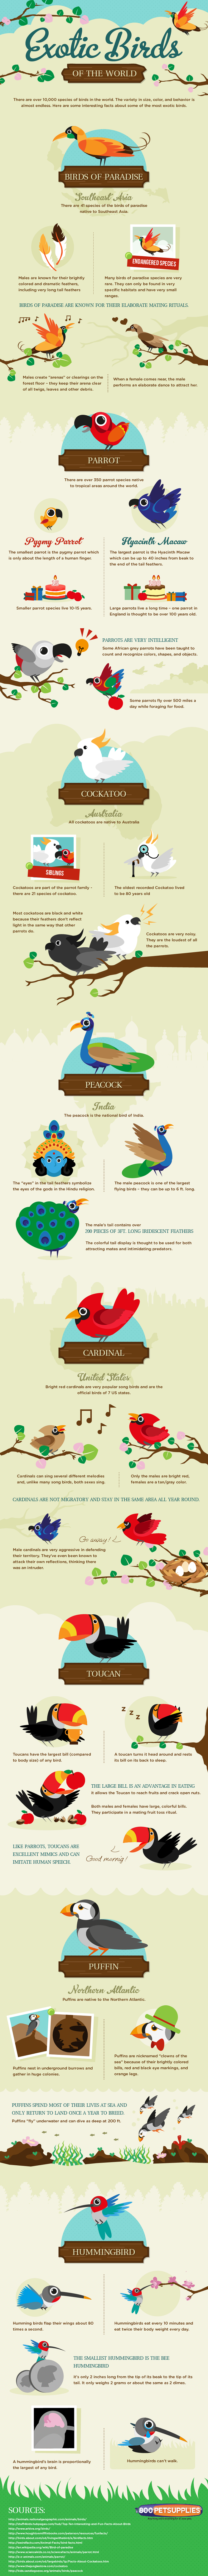 The-most-exotic-birds-infographic-757[1]